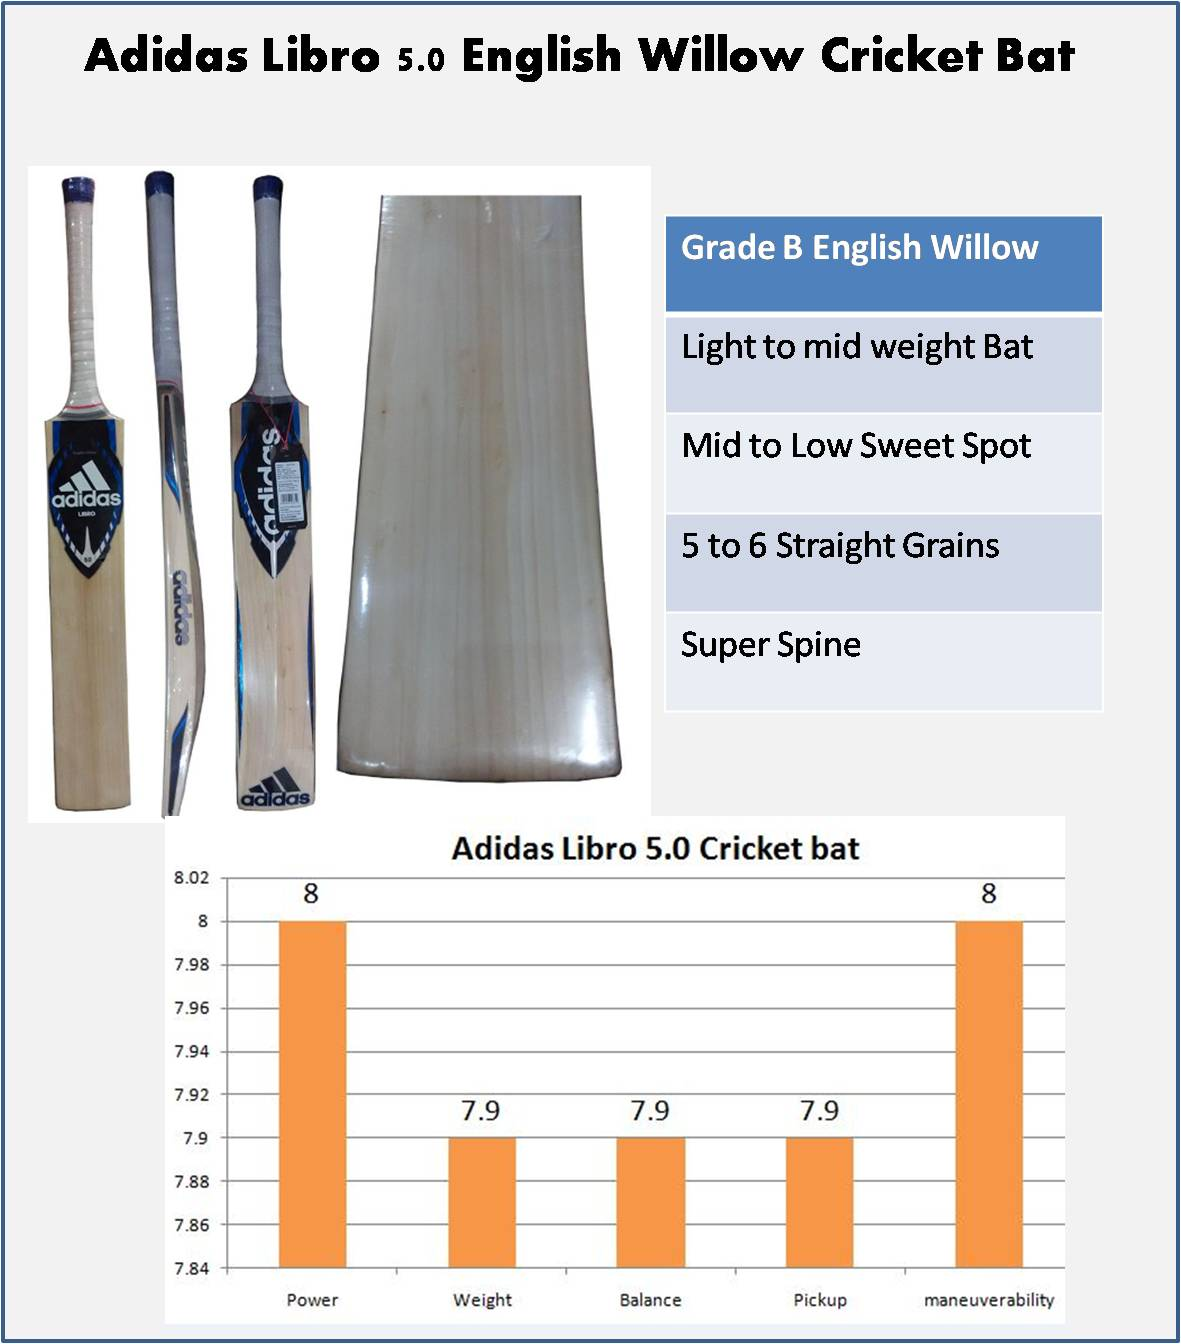 Detail Image of Adidas Libro 5.0 English Willow Cricket Bat